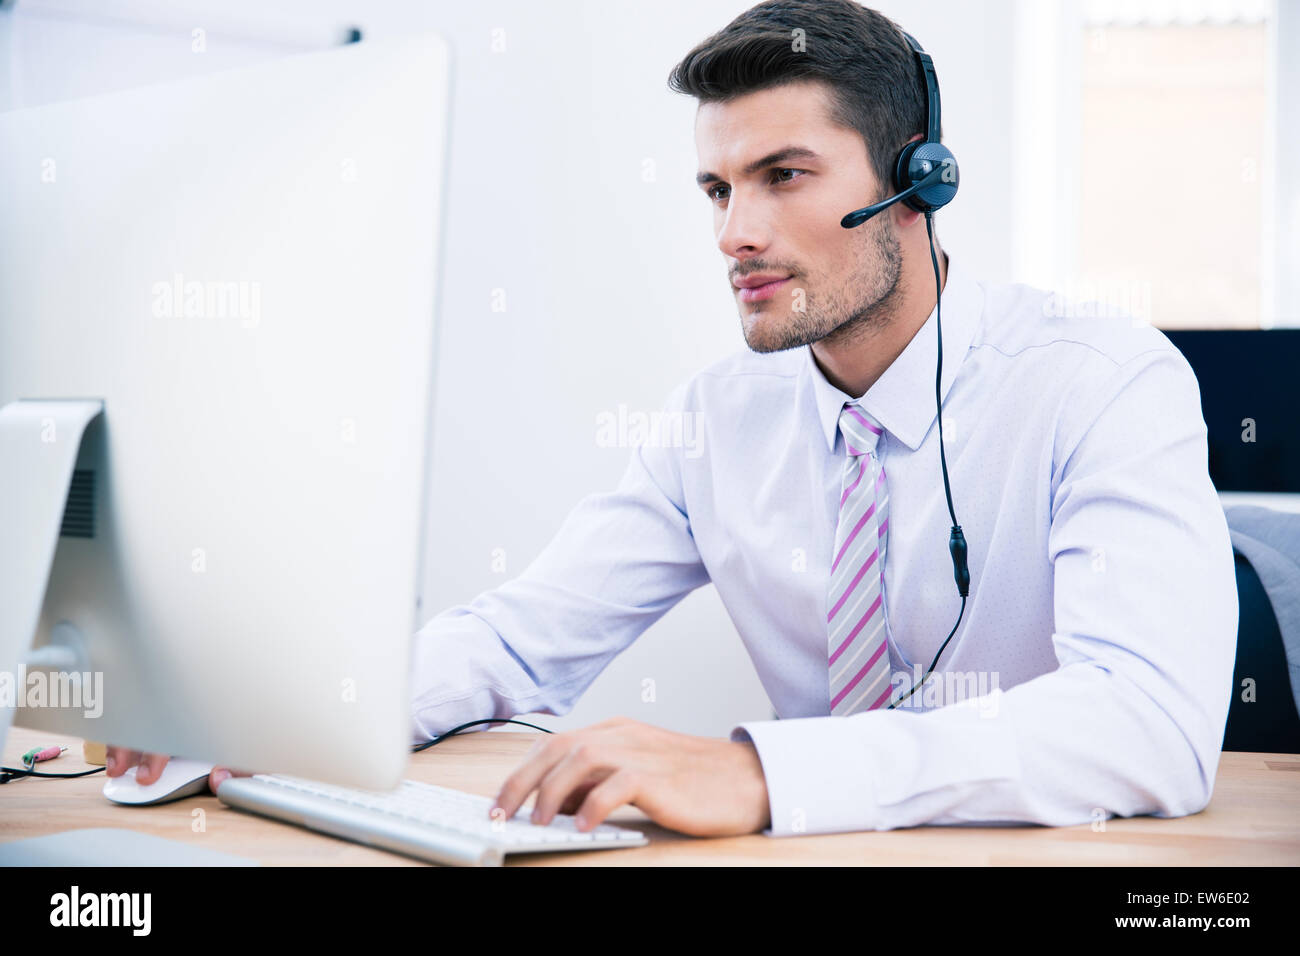 Handsome male operator working on PC in office - Stock Image